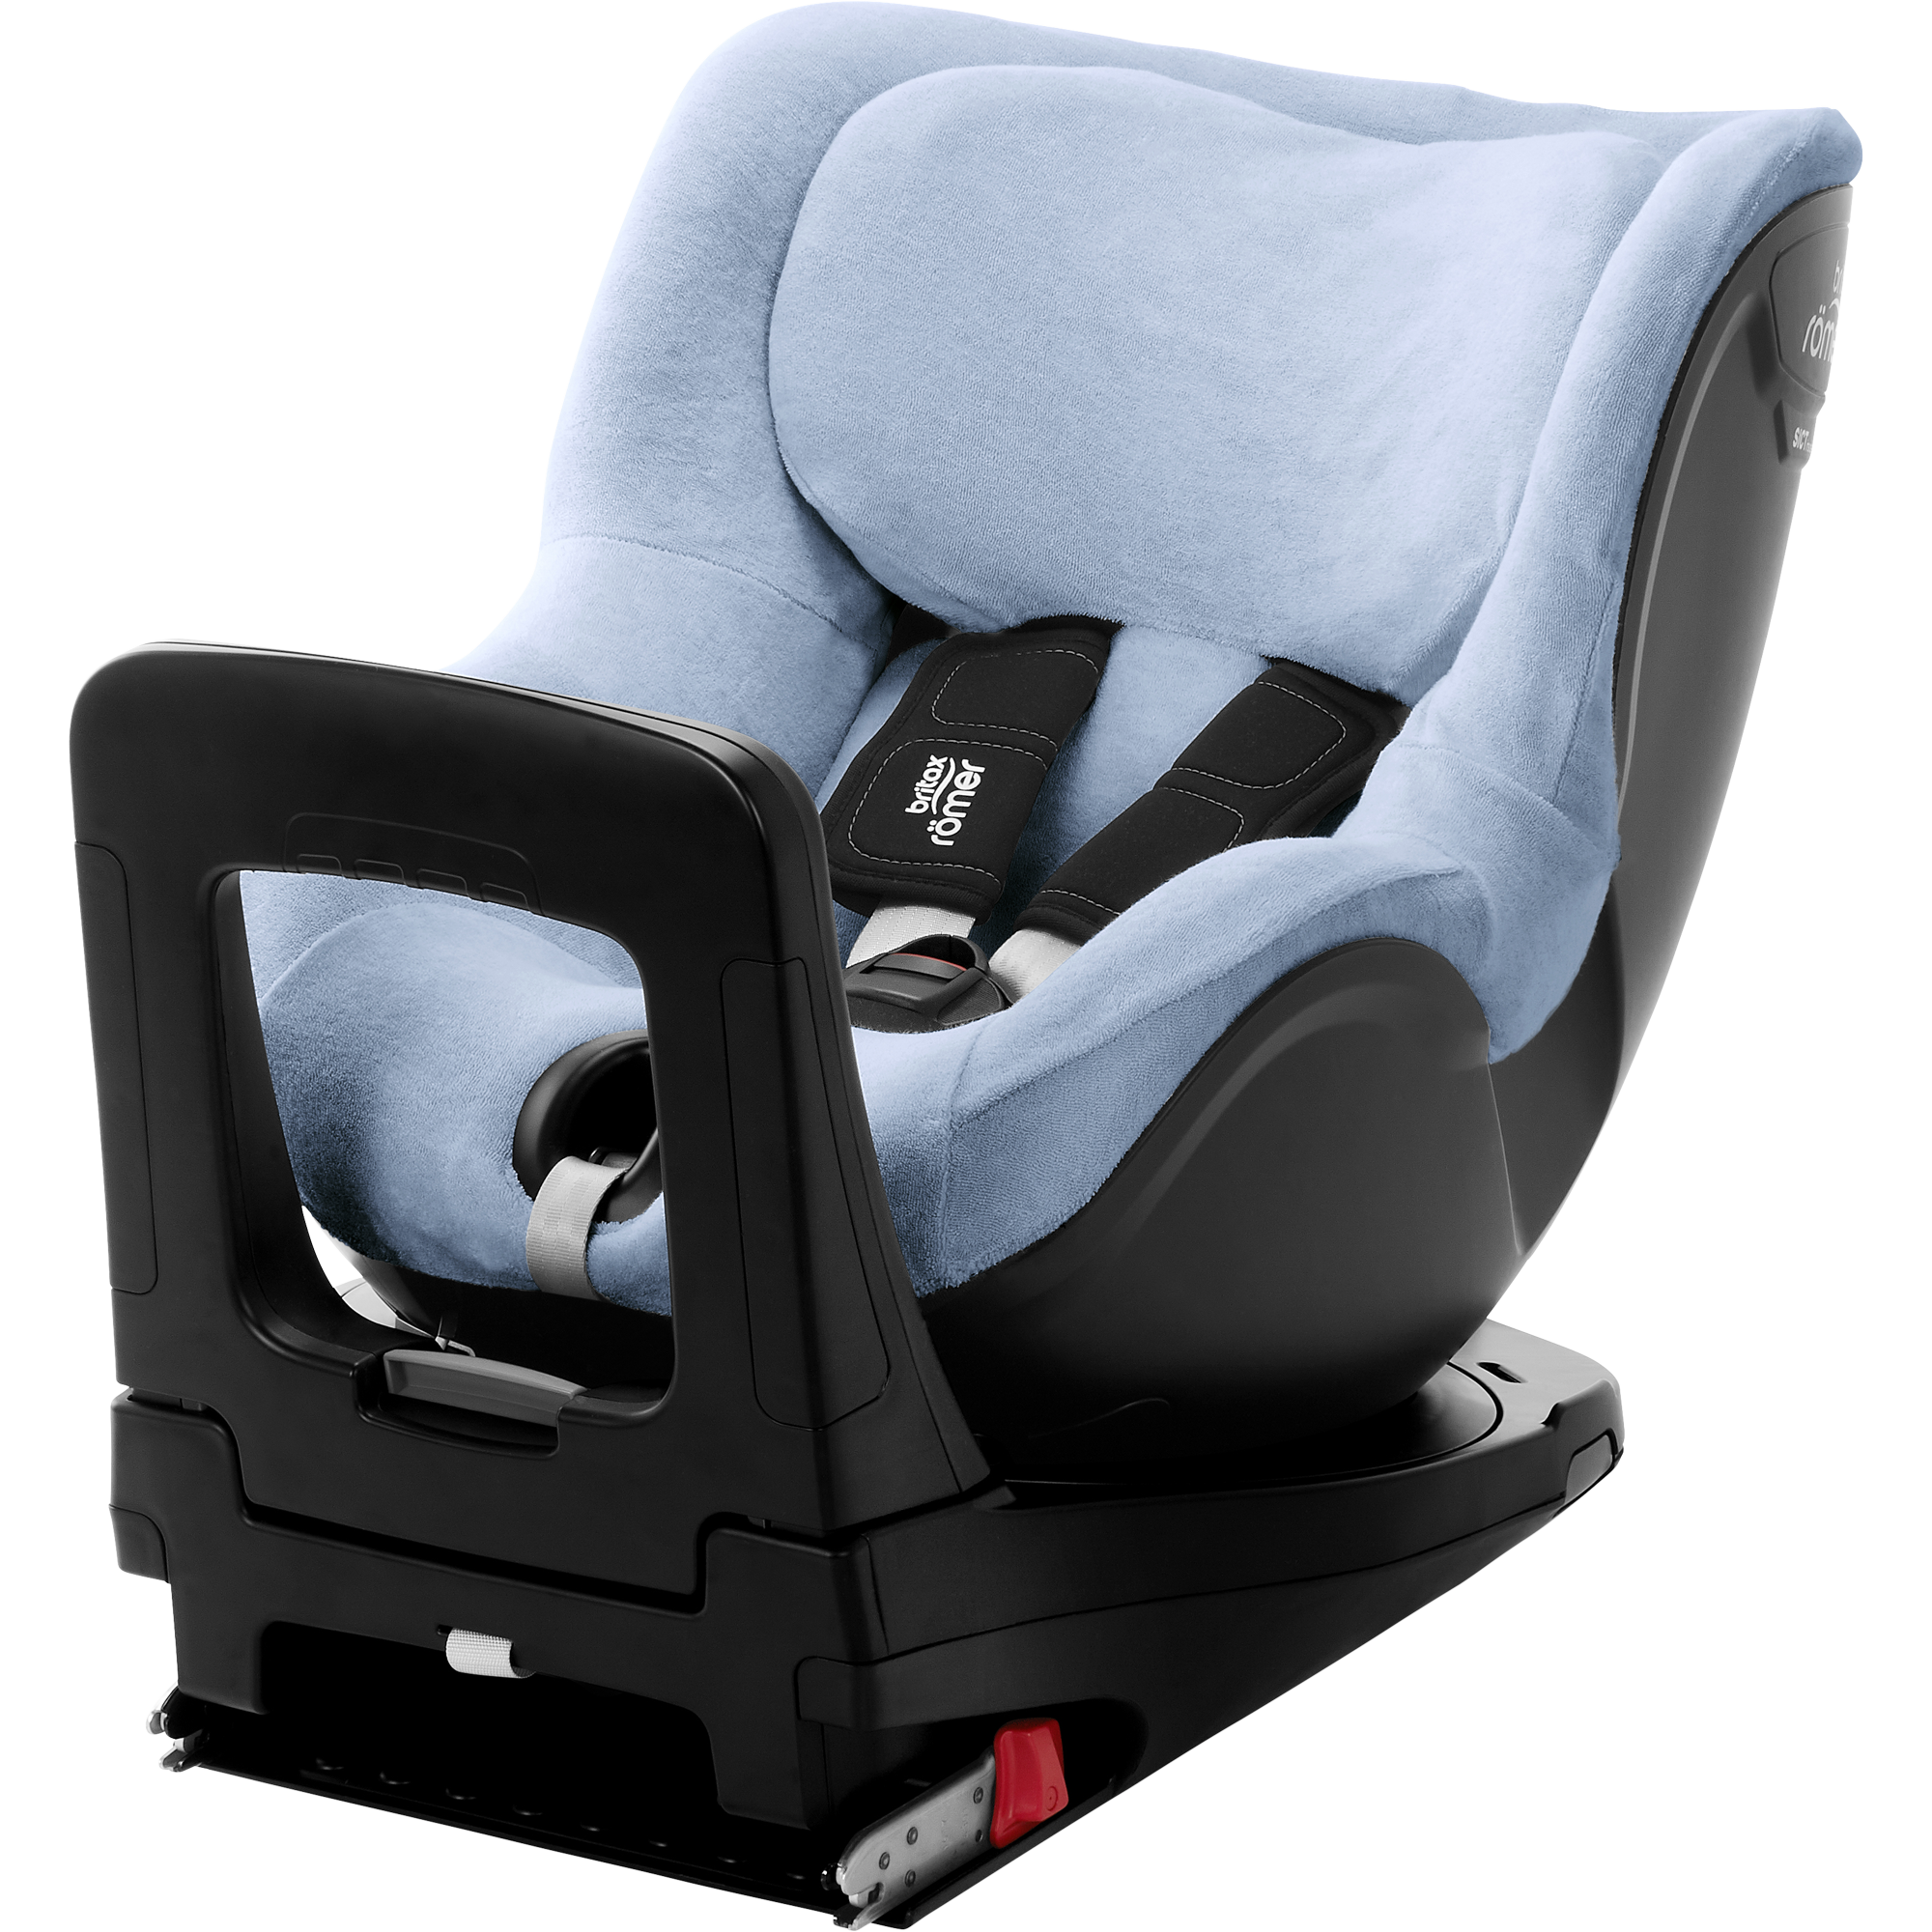 der sommerbezug f r den beliebten reboardkindersitz dualfix swingfix i size von britax r mer. Black Bedroom Furniture Sets. Home Design Ideas